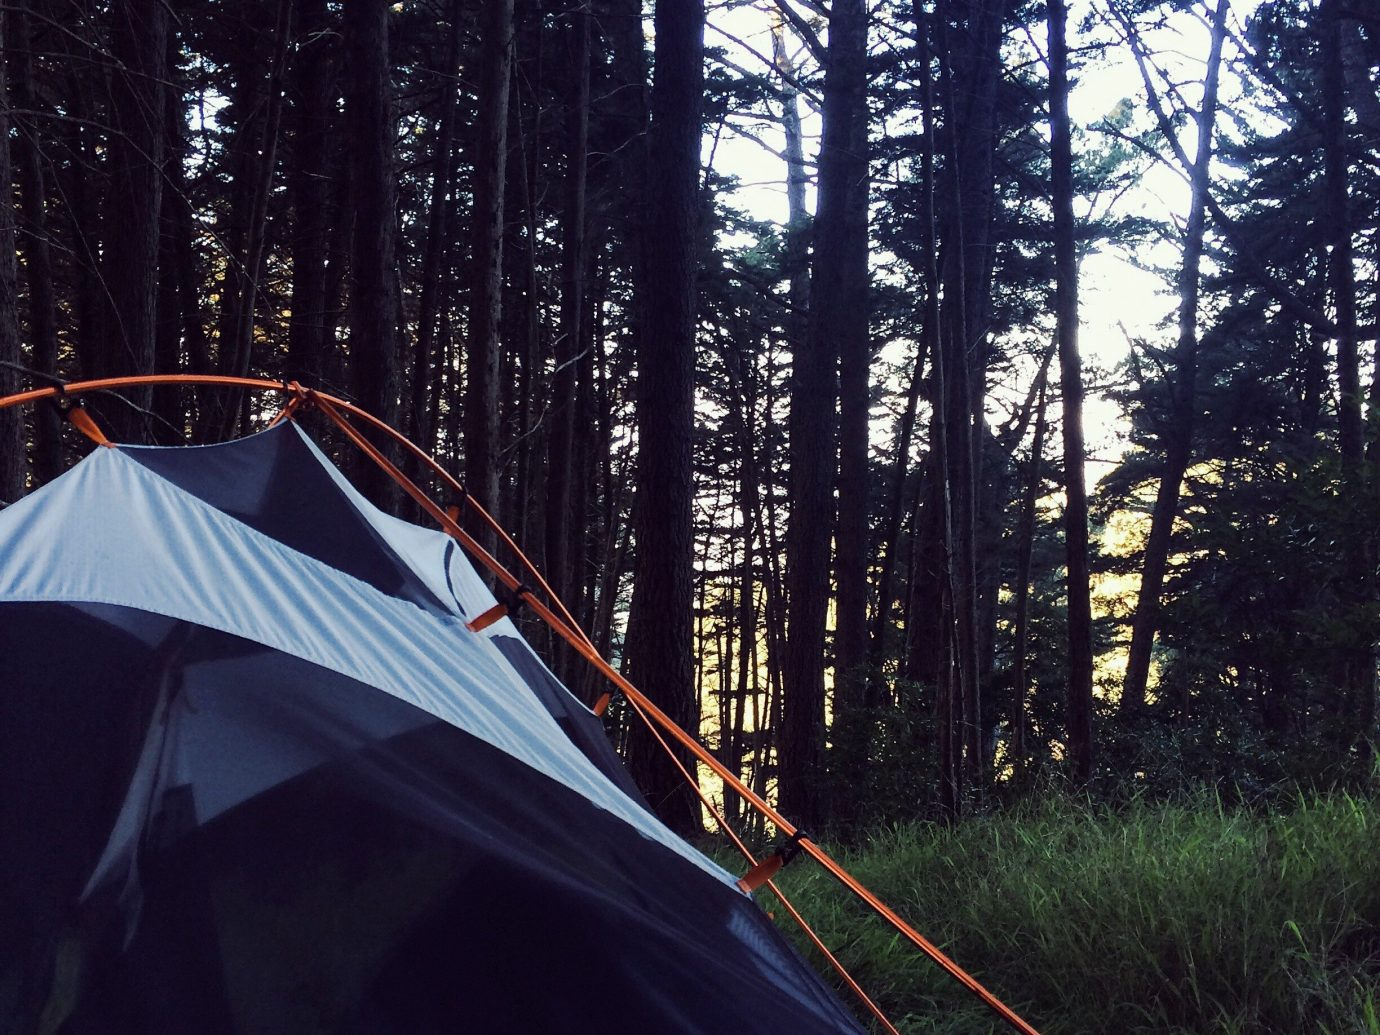 Trip Ideas tree outdoor tent season Winter sunlight vehicle outdoor object Forest day